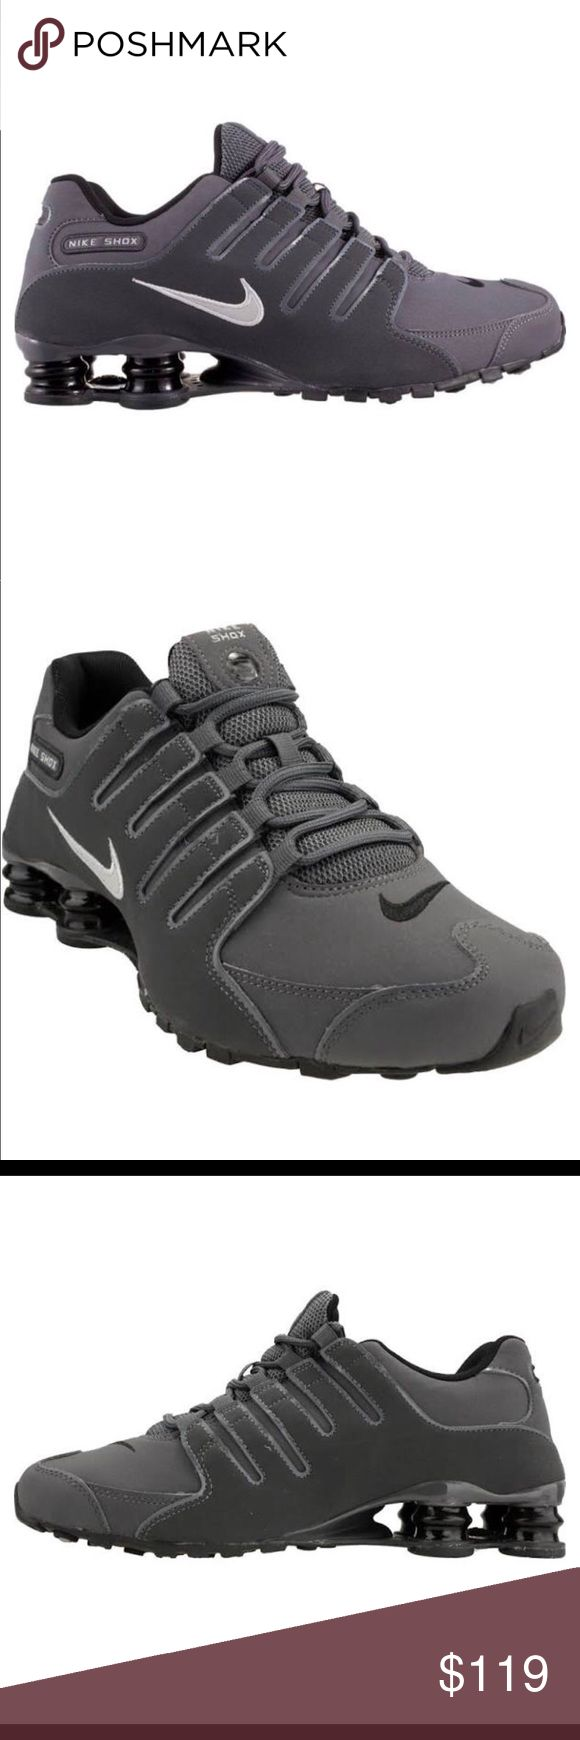 Nike Shox NZ Brand new in original box NIKE Shox NZ in size 10, 10.5, 11 and 12! Nike Shoes Athletic Shoes